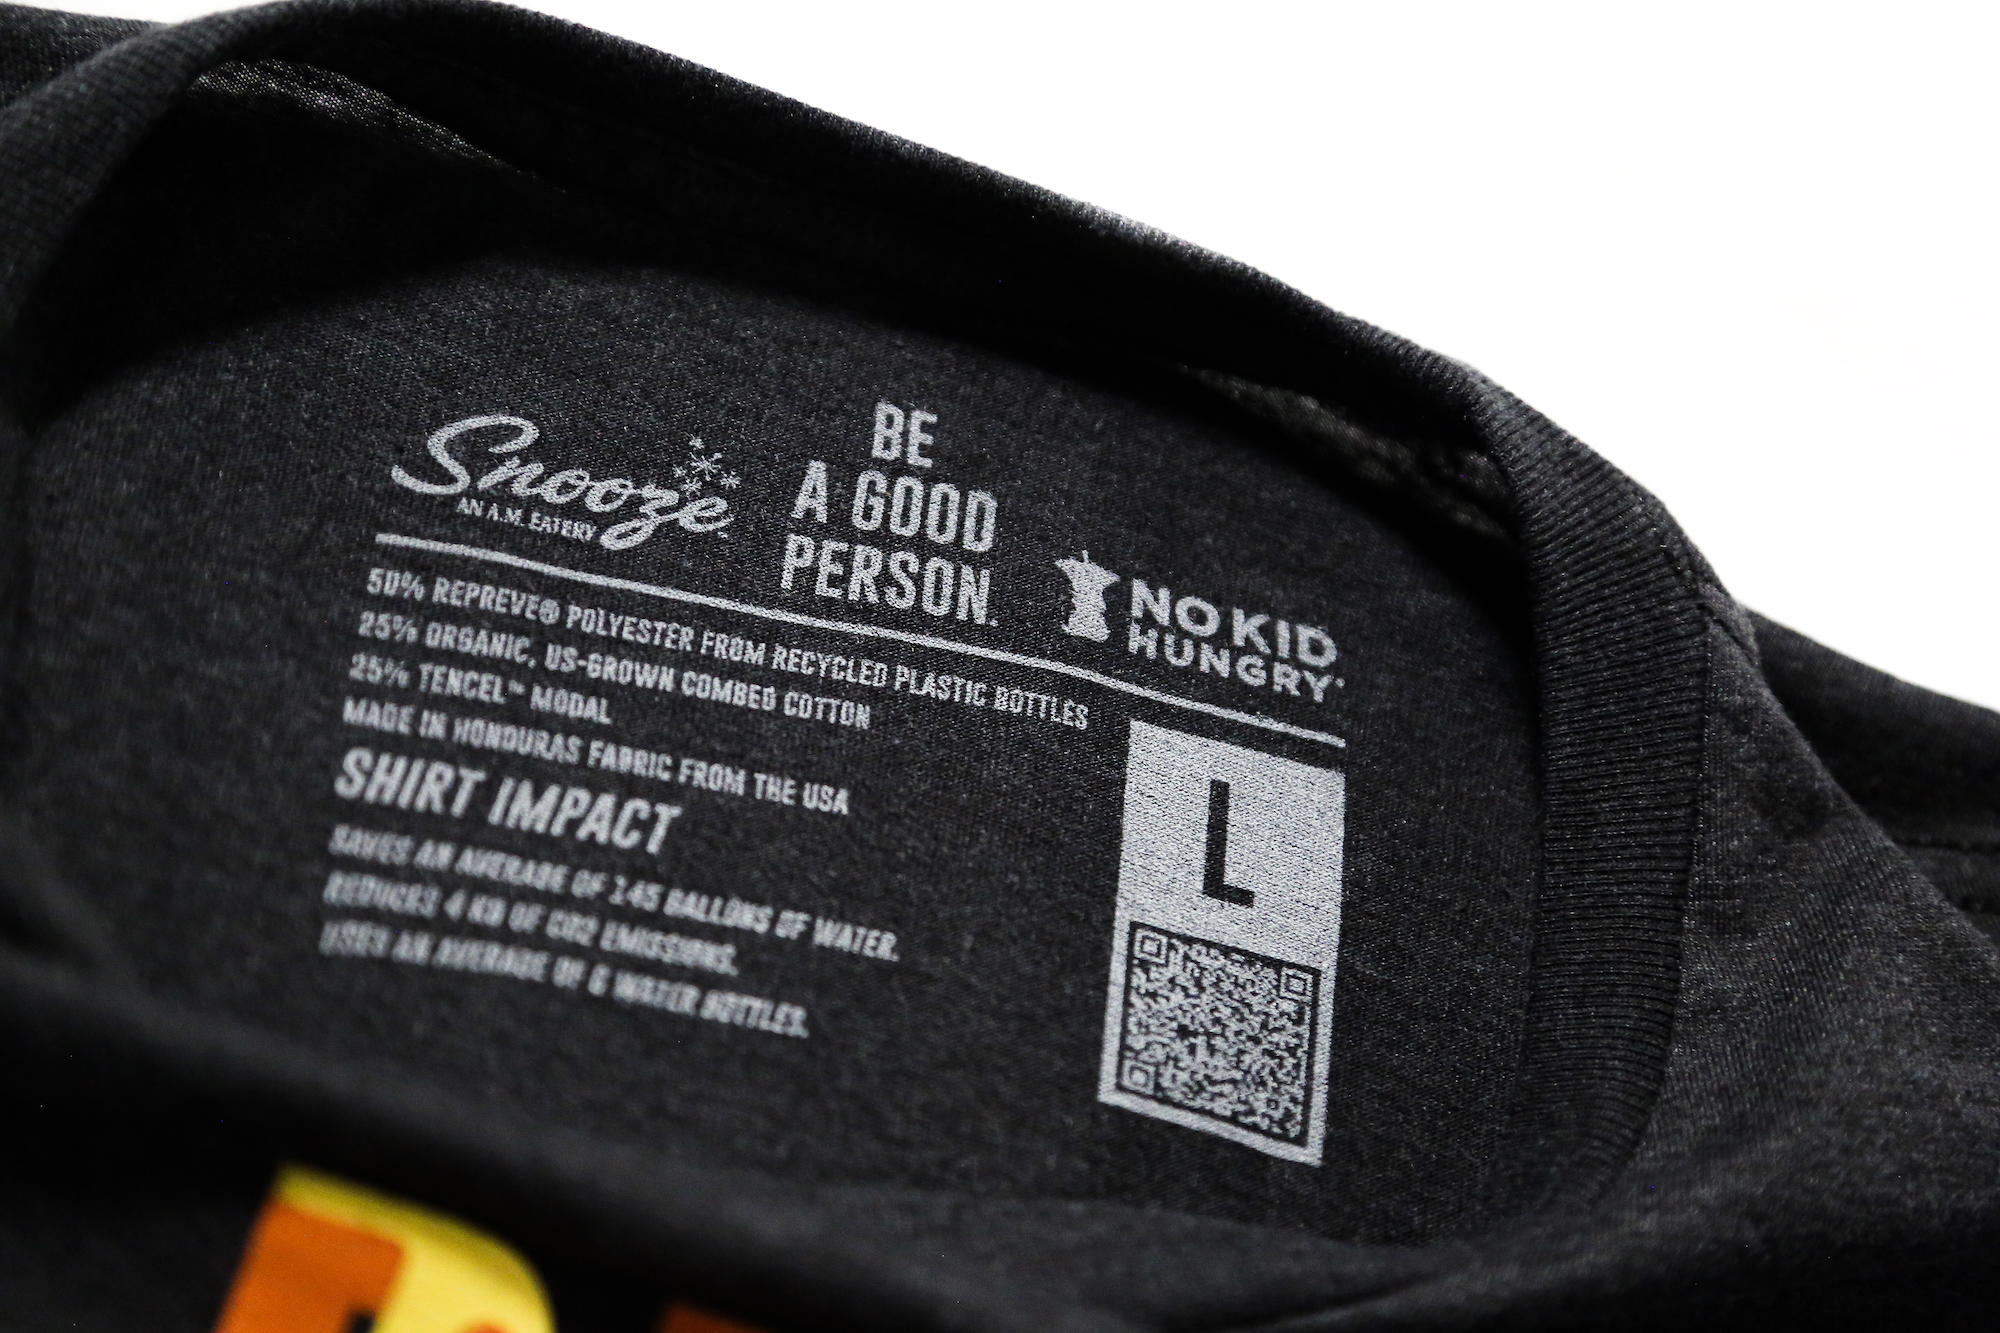 Snooze eatery screen printed neck tag